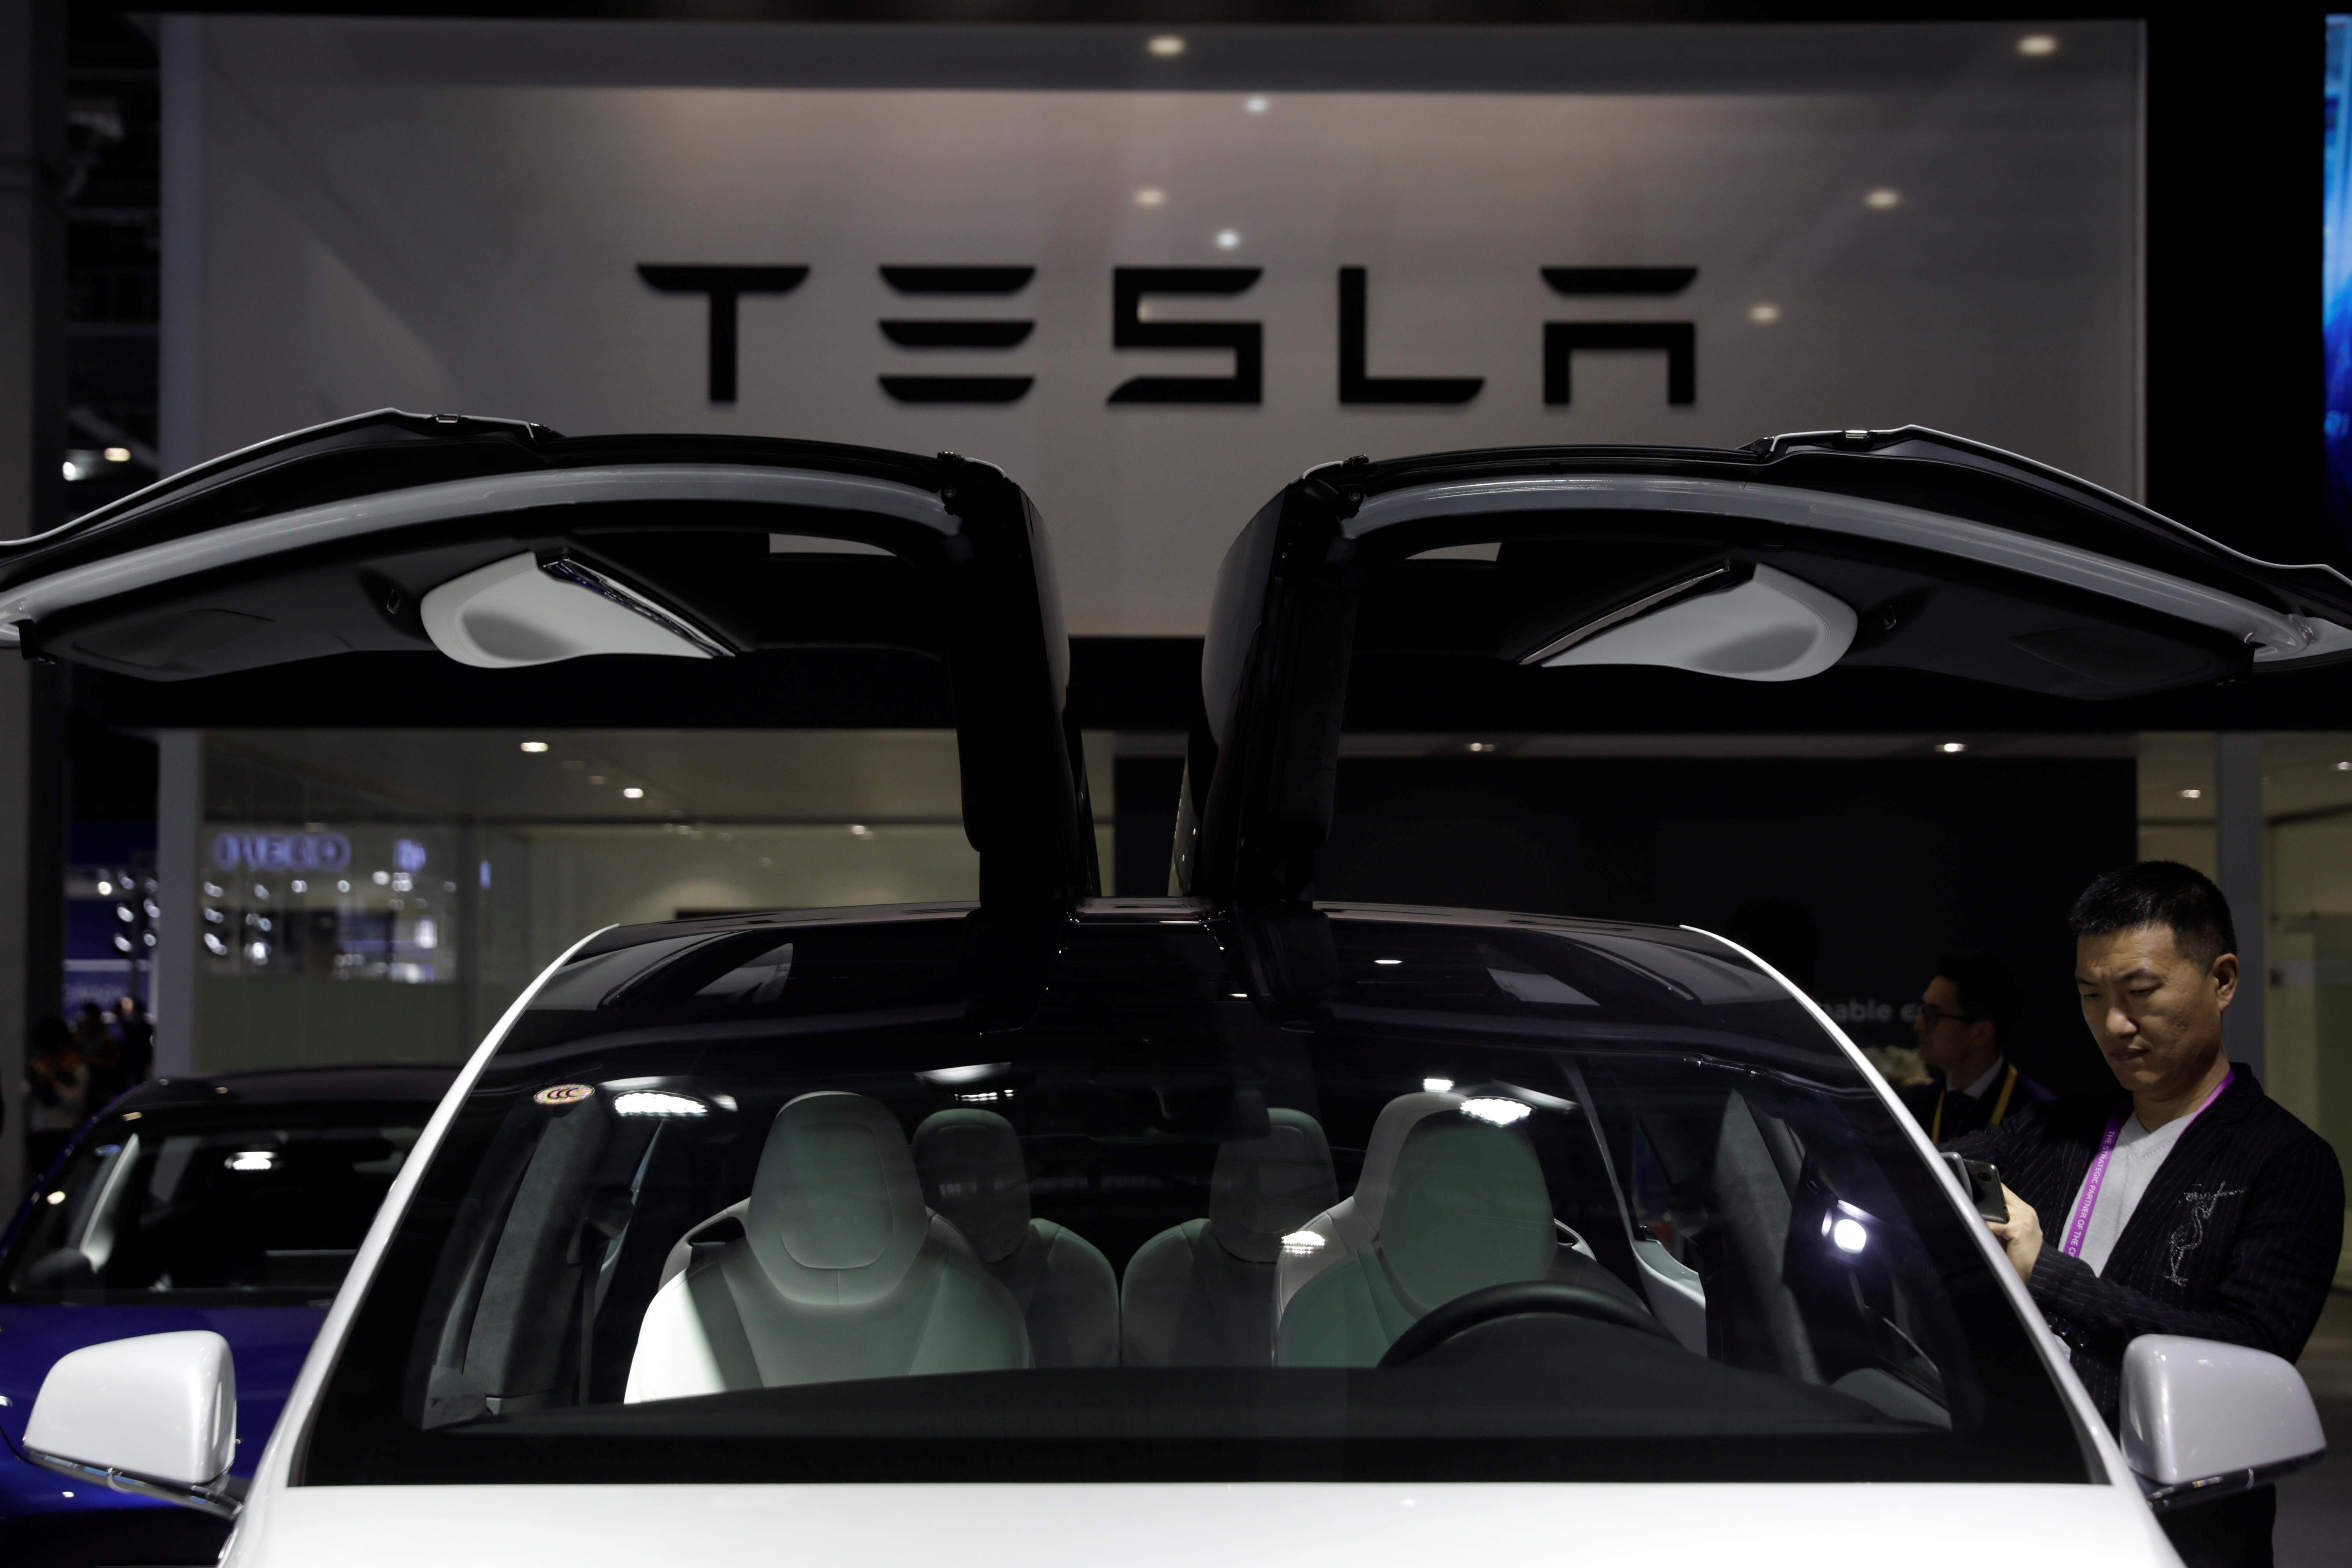 A Tesla sign is seen at the second China International Import Expo (CIIE) in Shanghai, China November 5, 2019. REUTERS/Aly Song/Files